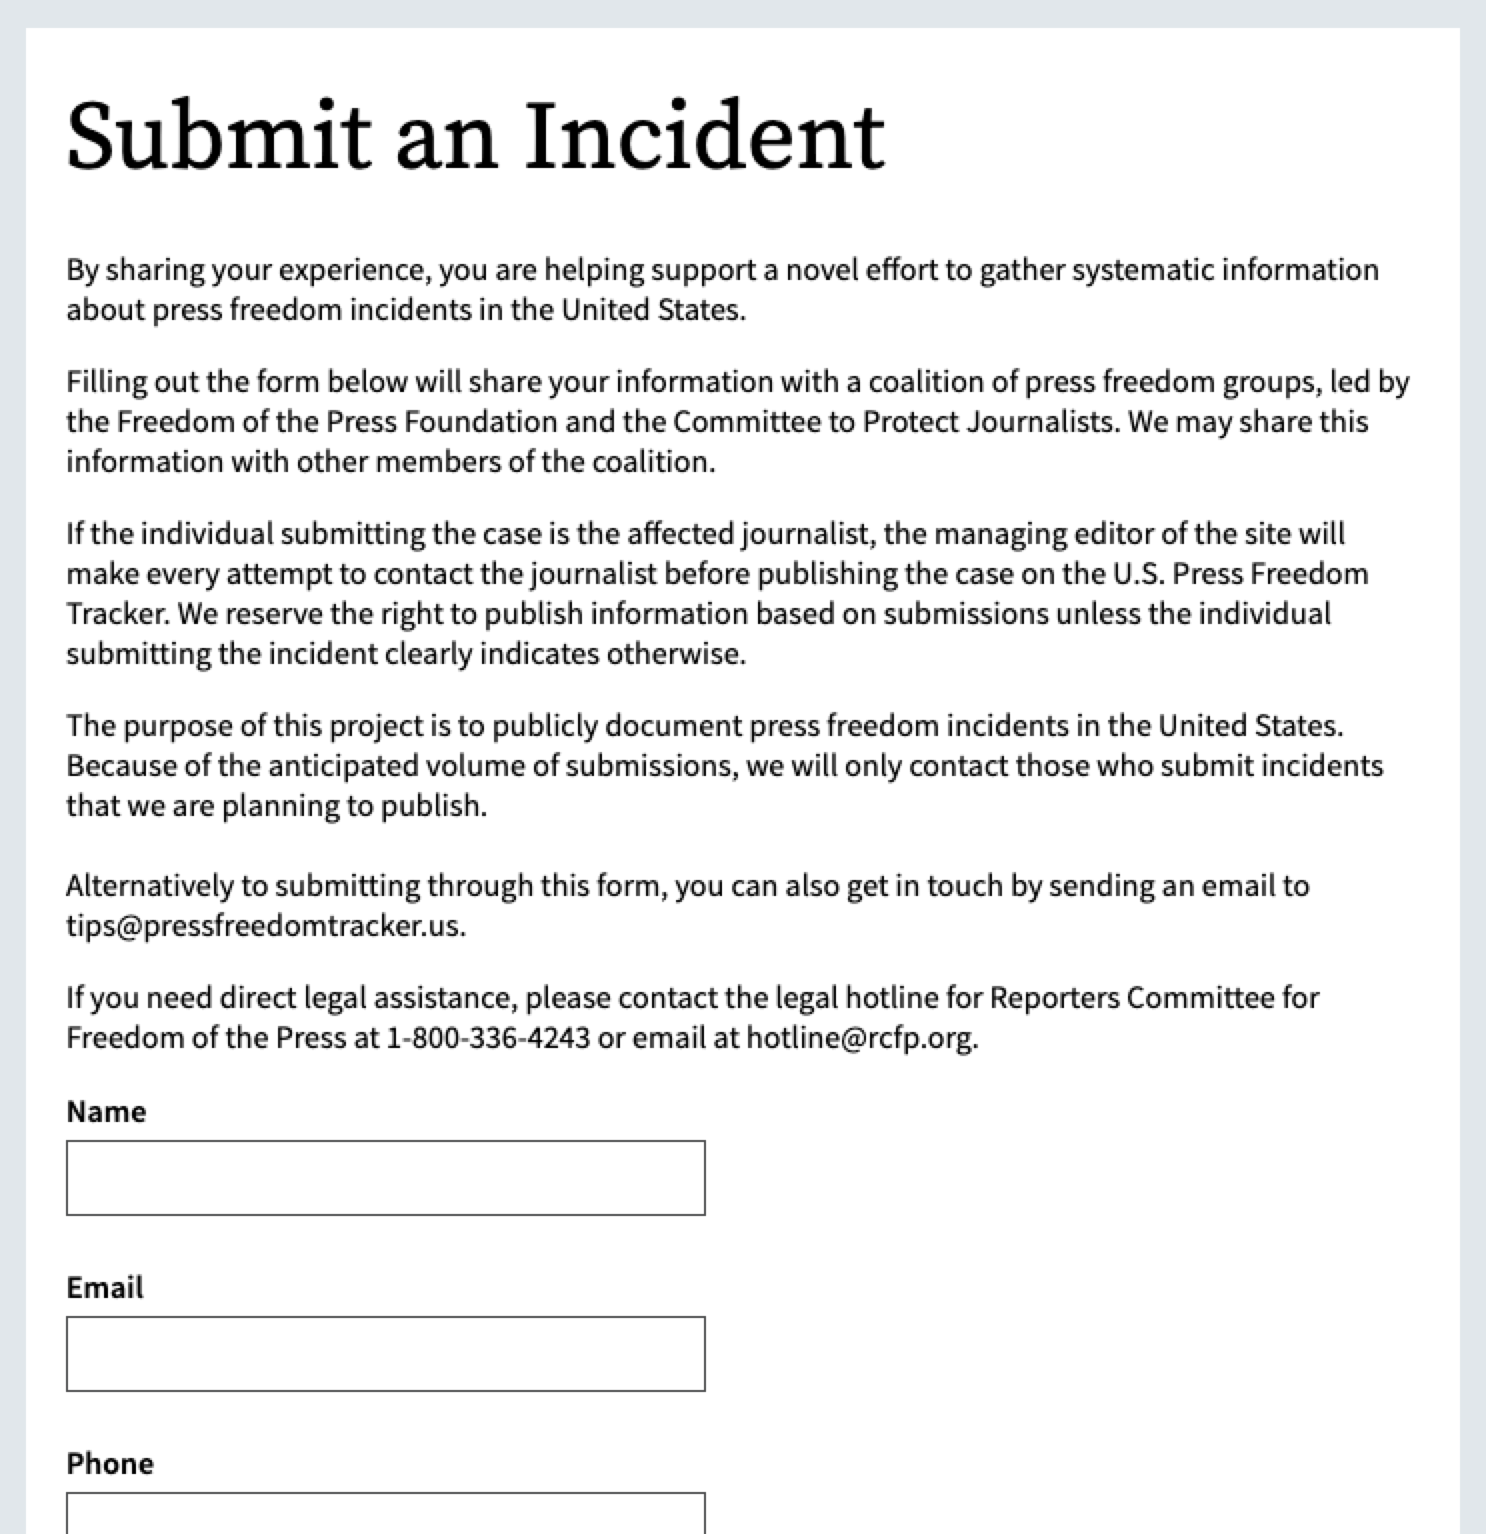 See the full form here